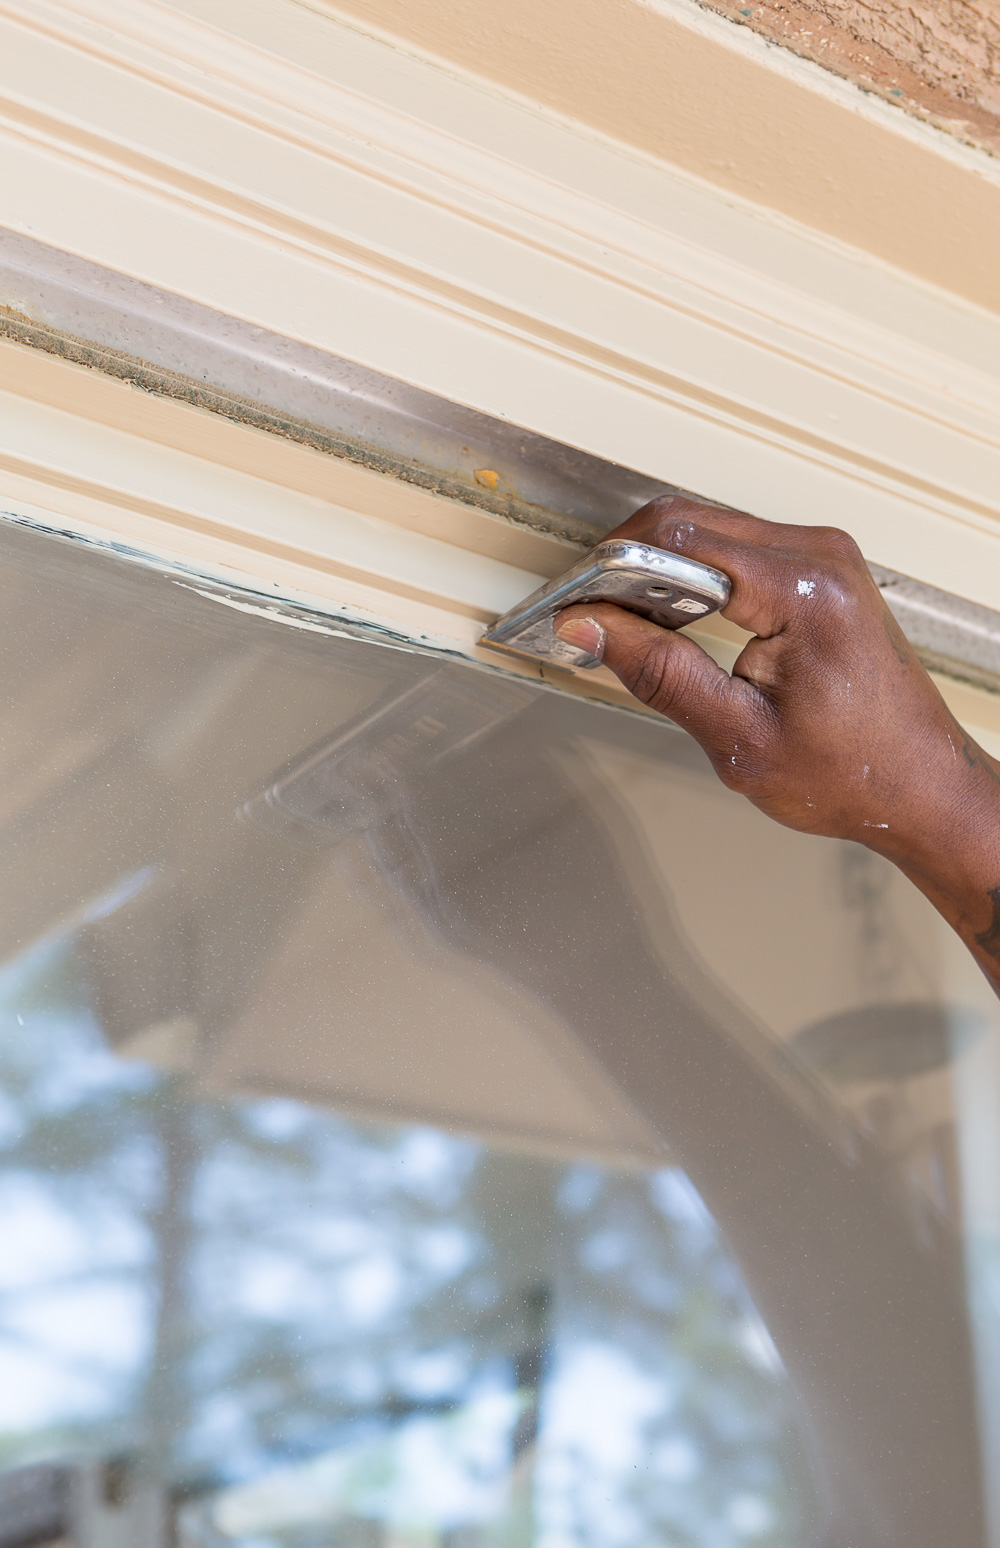 How to remove paint from glass on a door or window